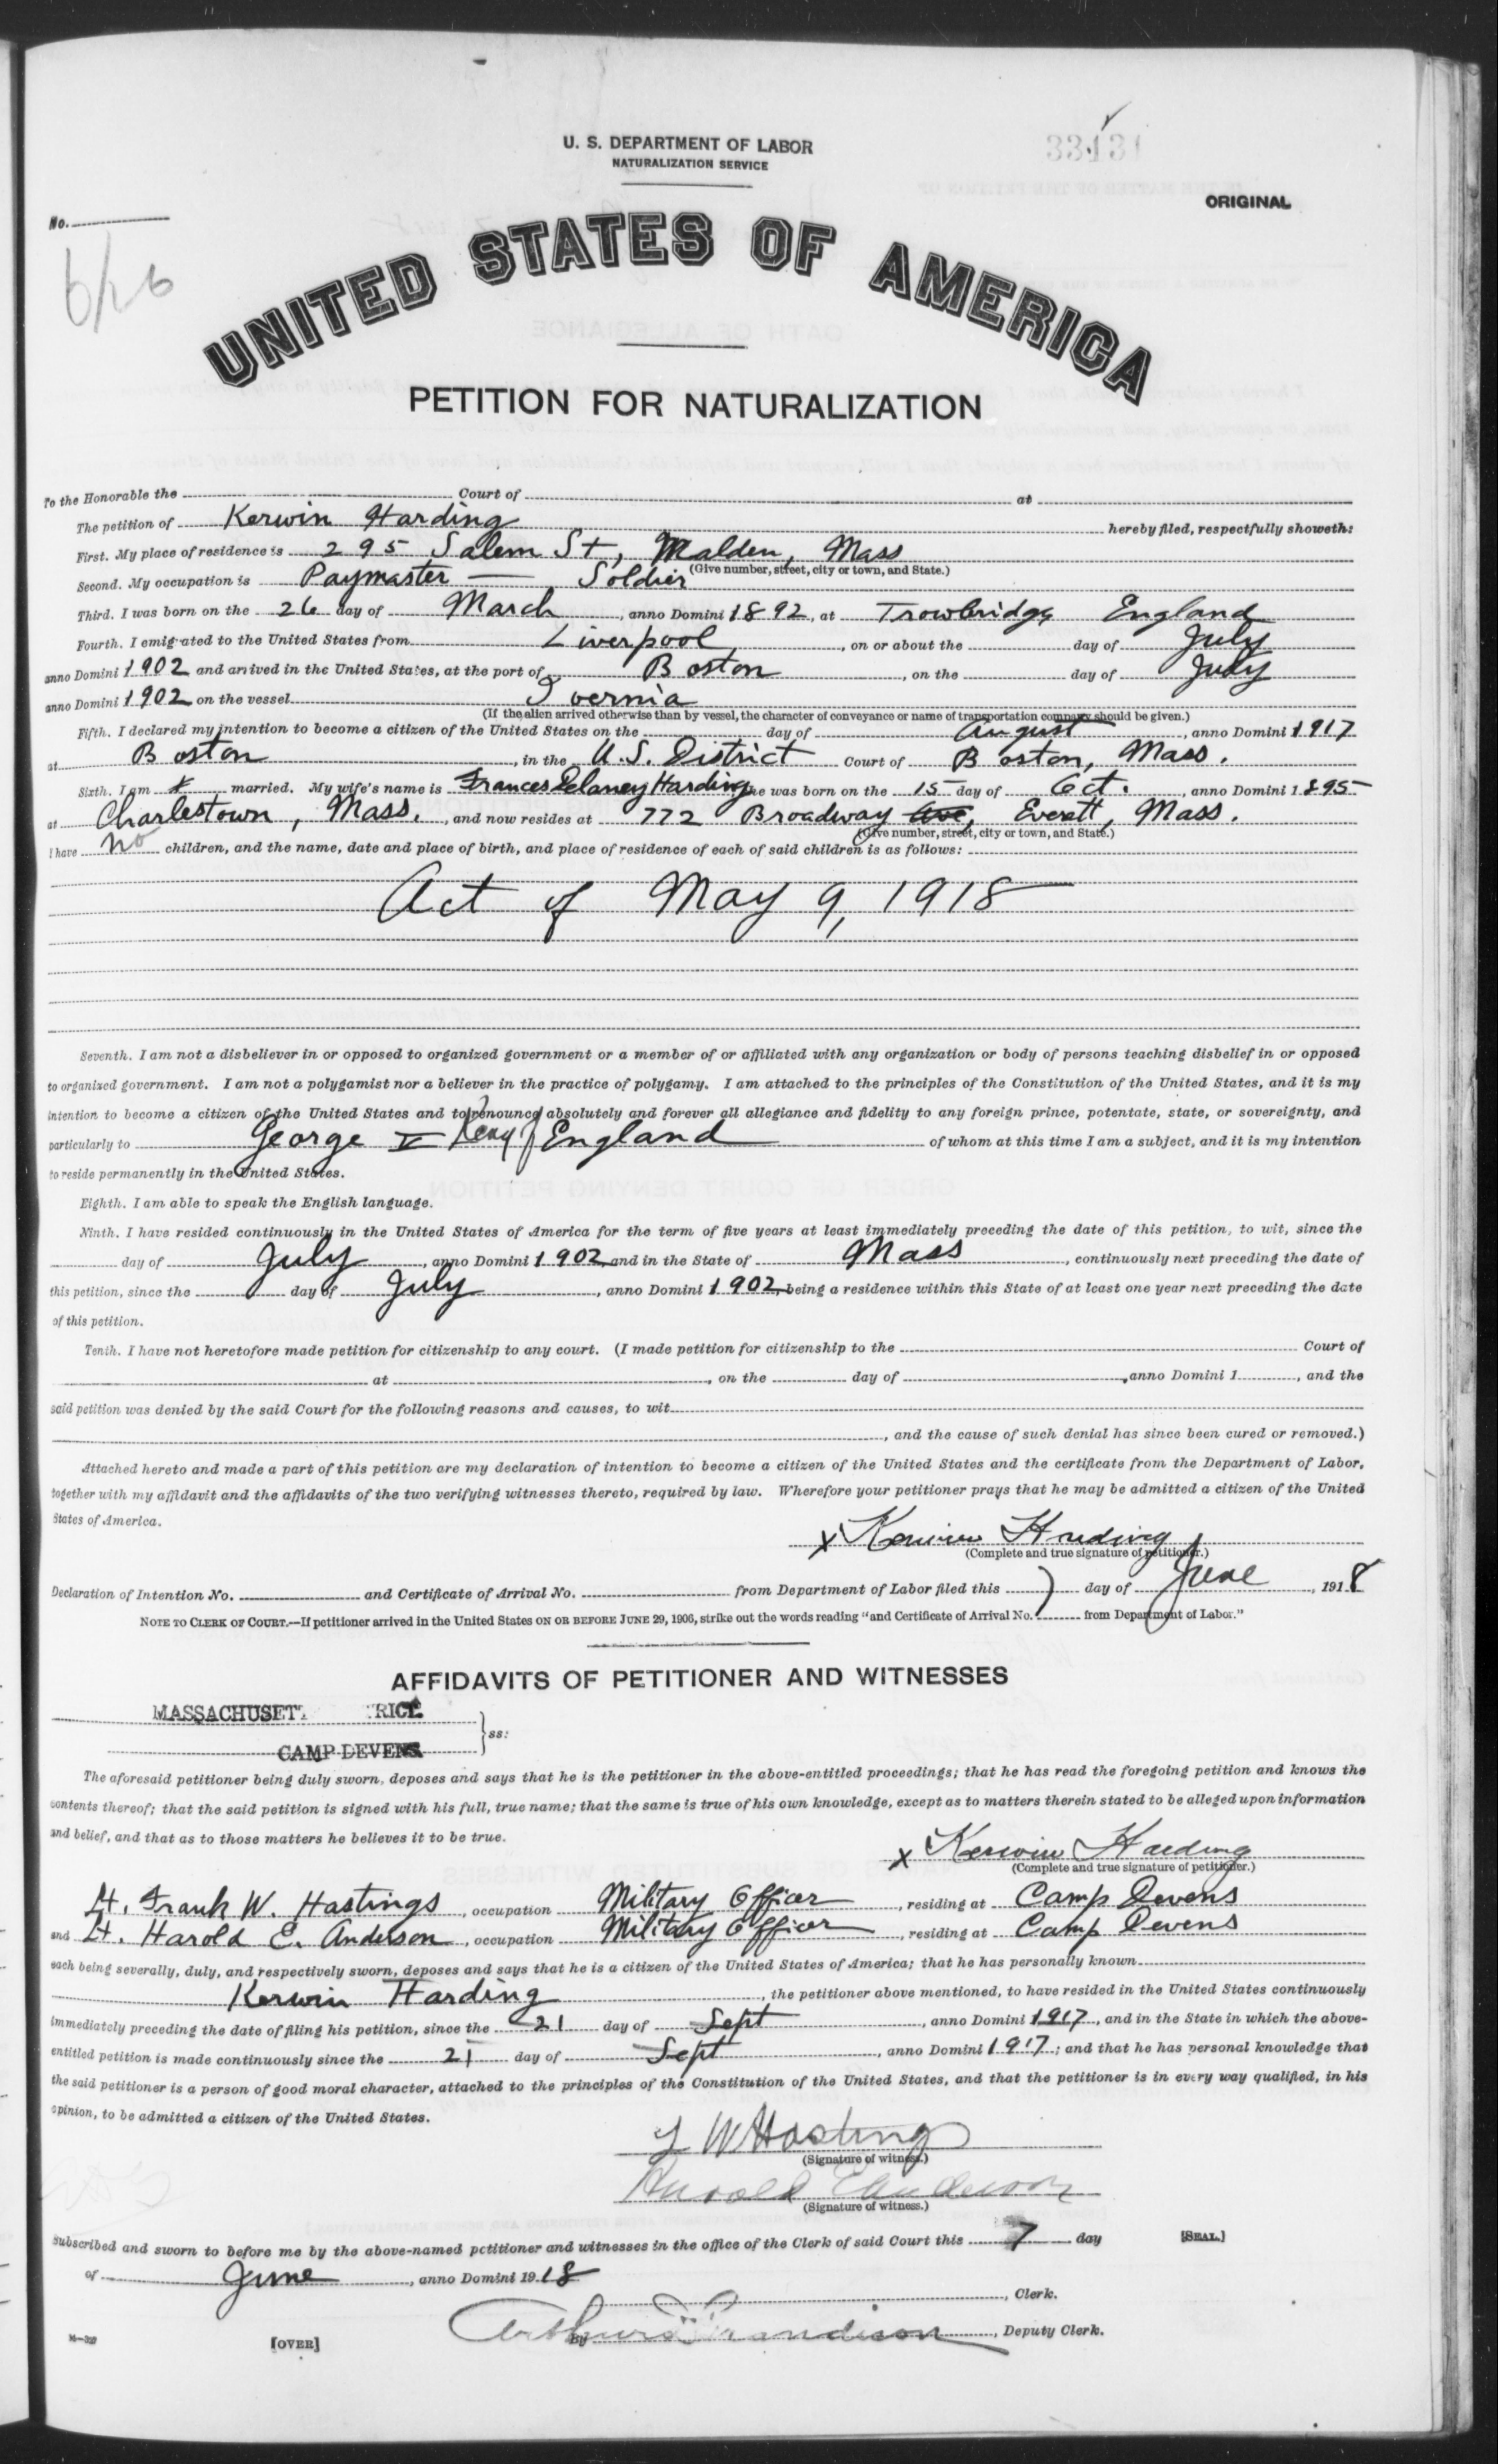 Petition for Naturalization of Kerwin Harding